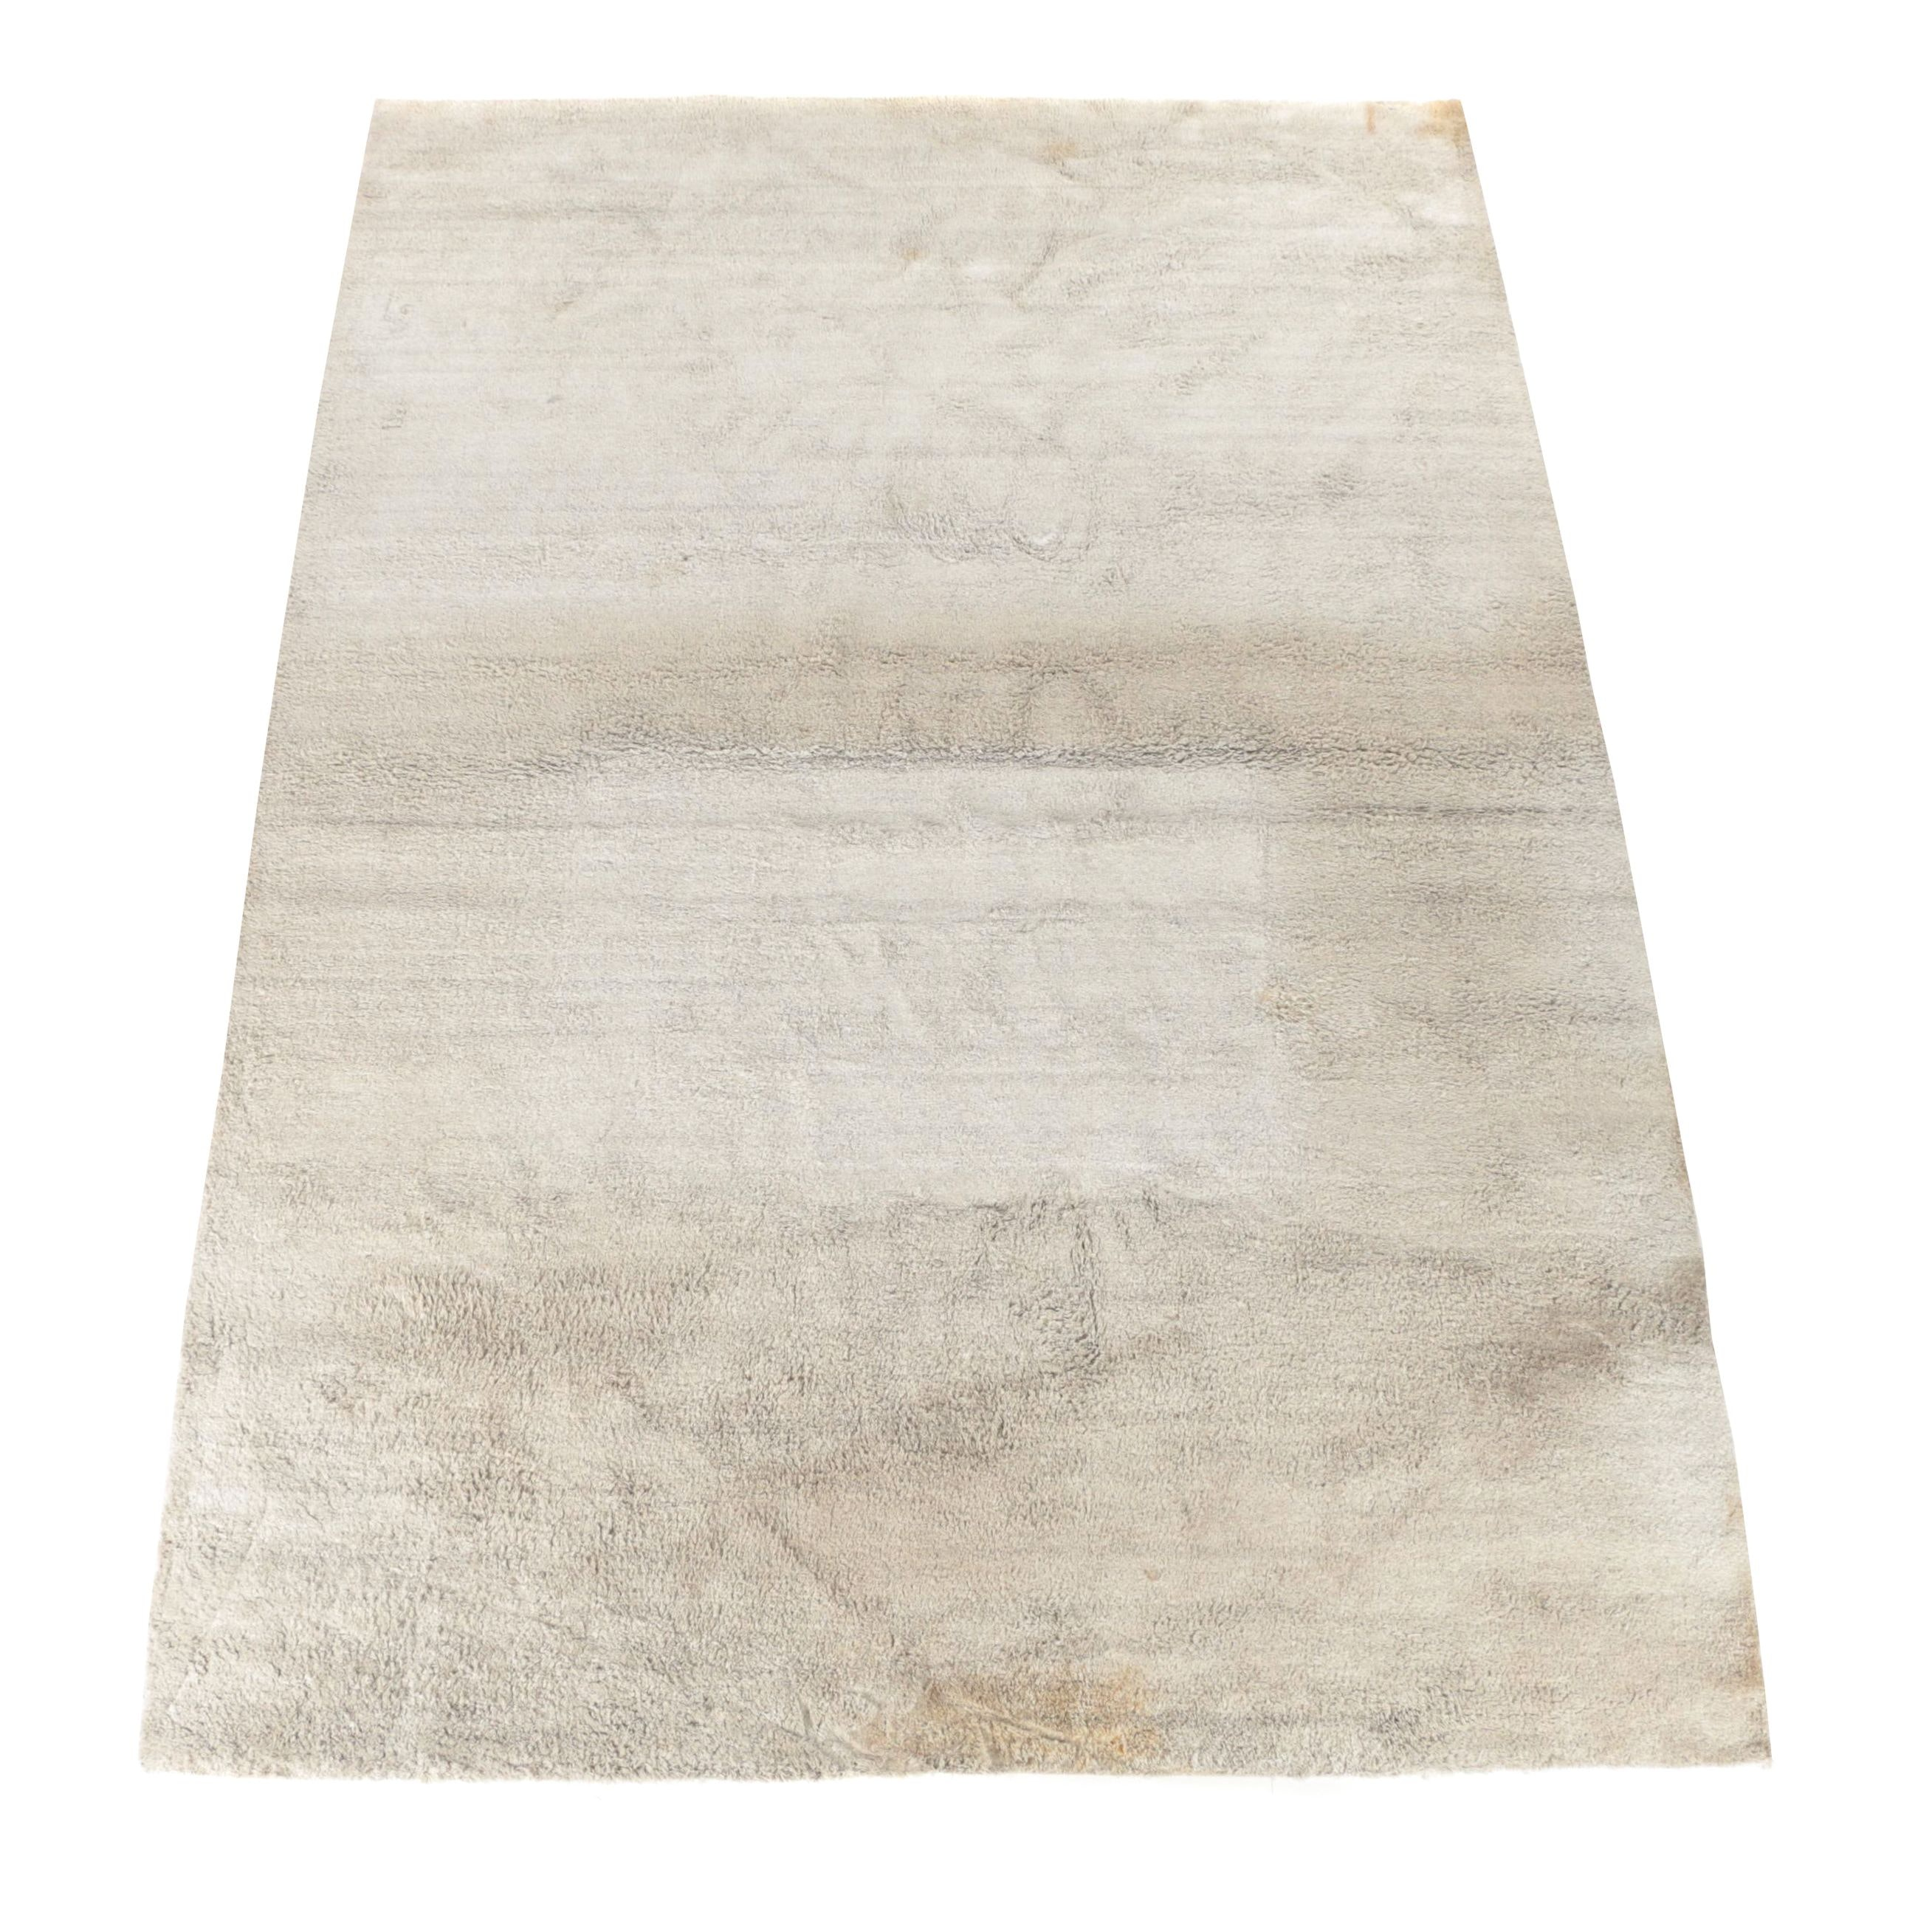 Hand-Knotted Ben Soleimani Wool Area Rug by Restoration Hardware